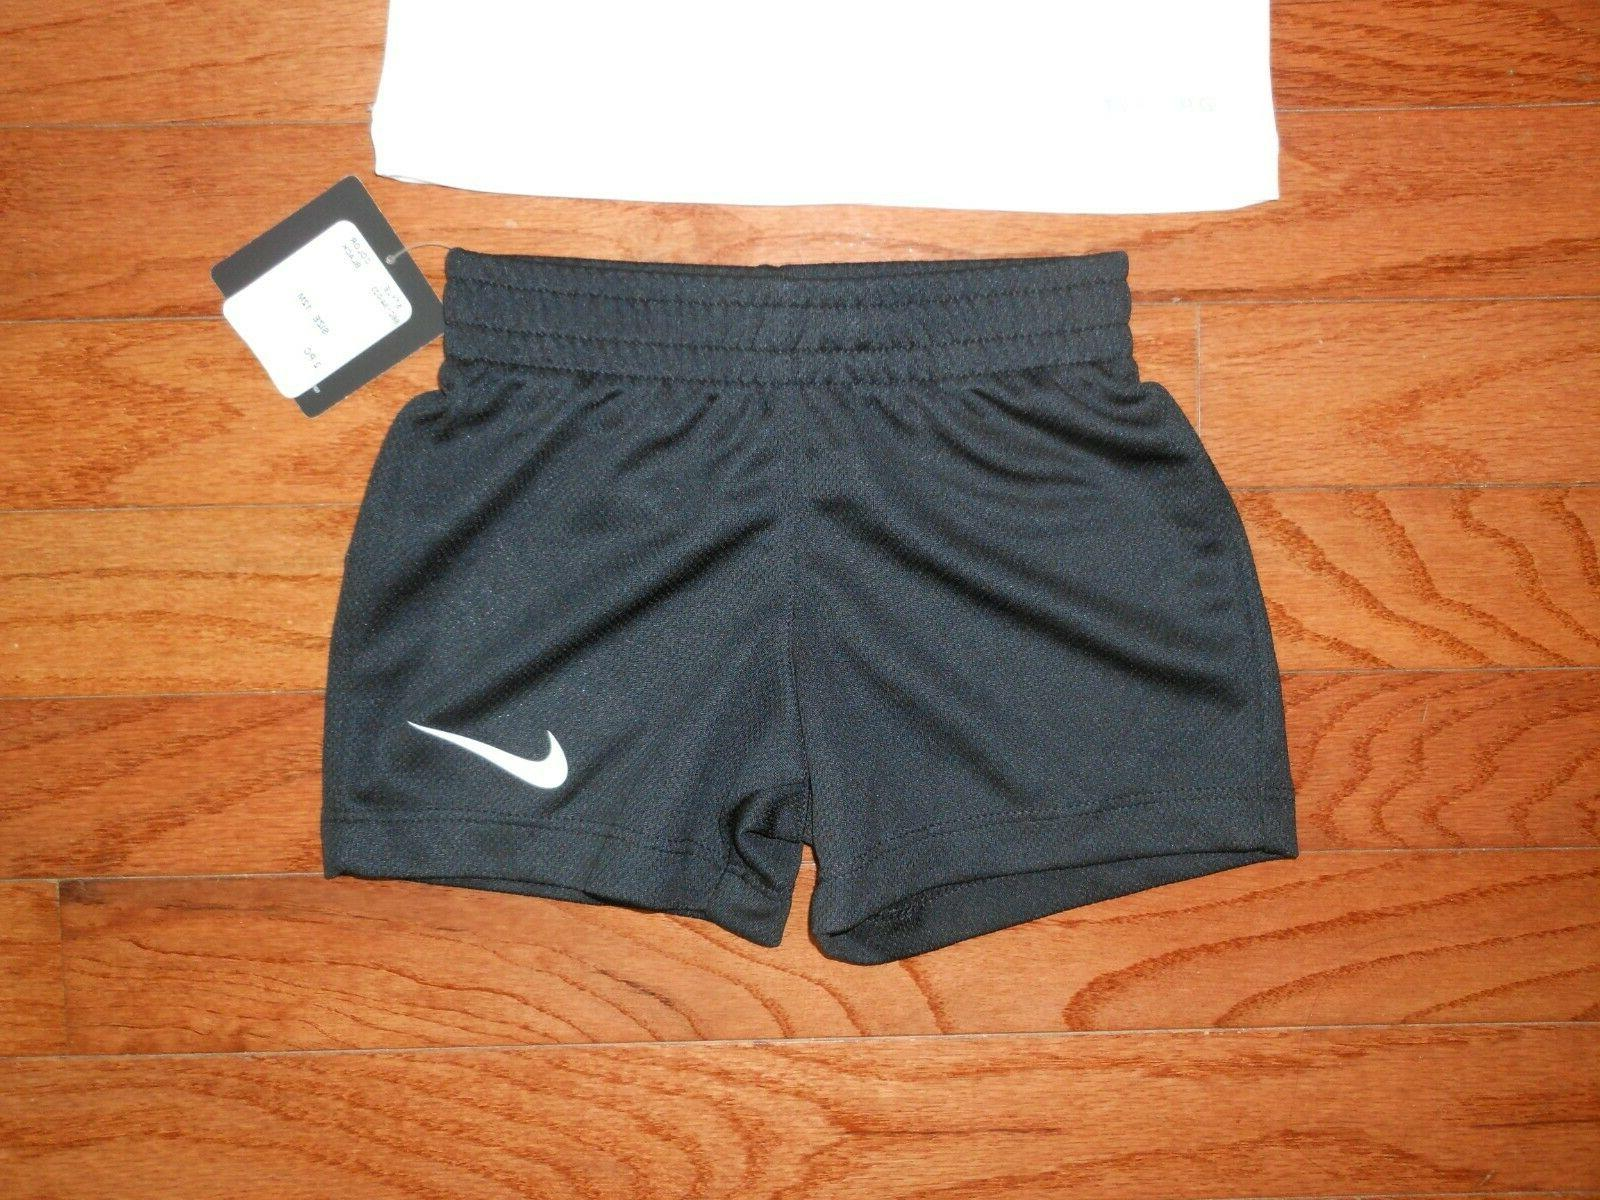 NWT Nike Baby 2pc black short outfit set, size